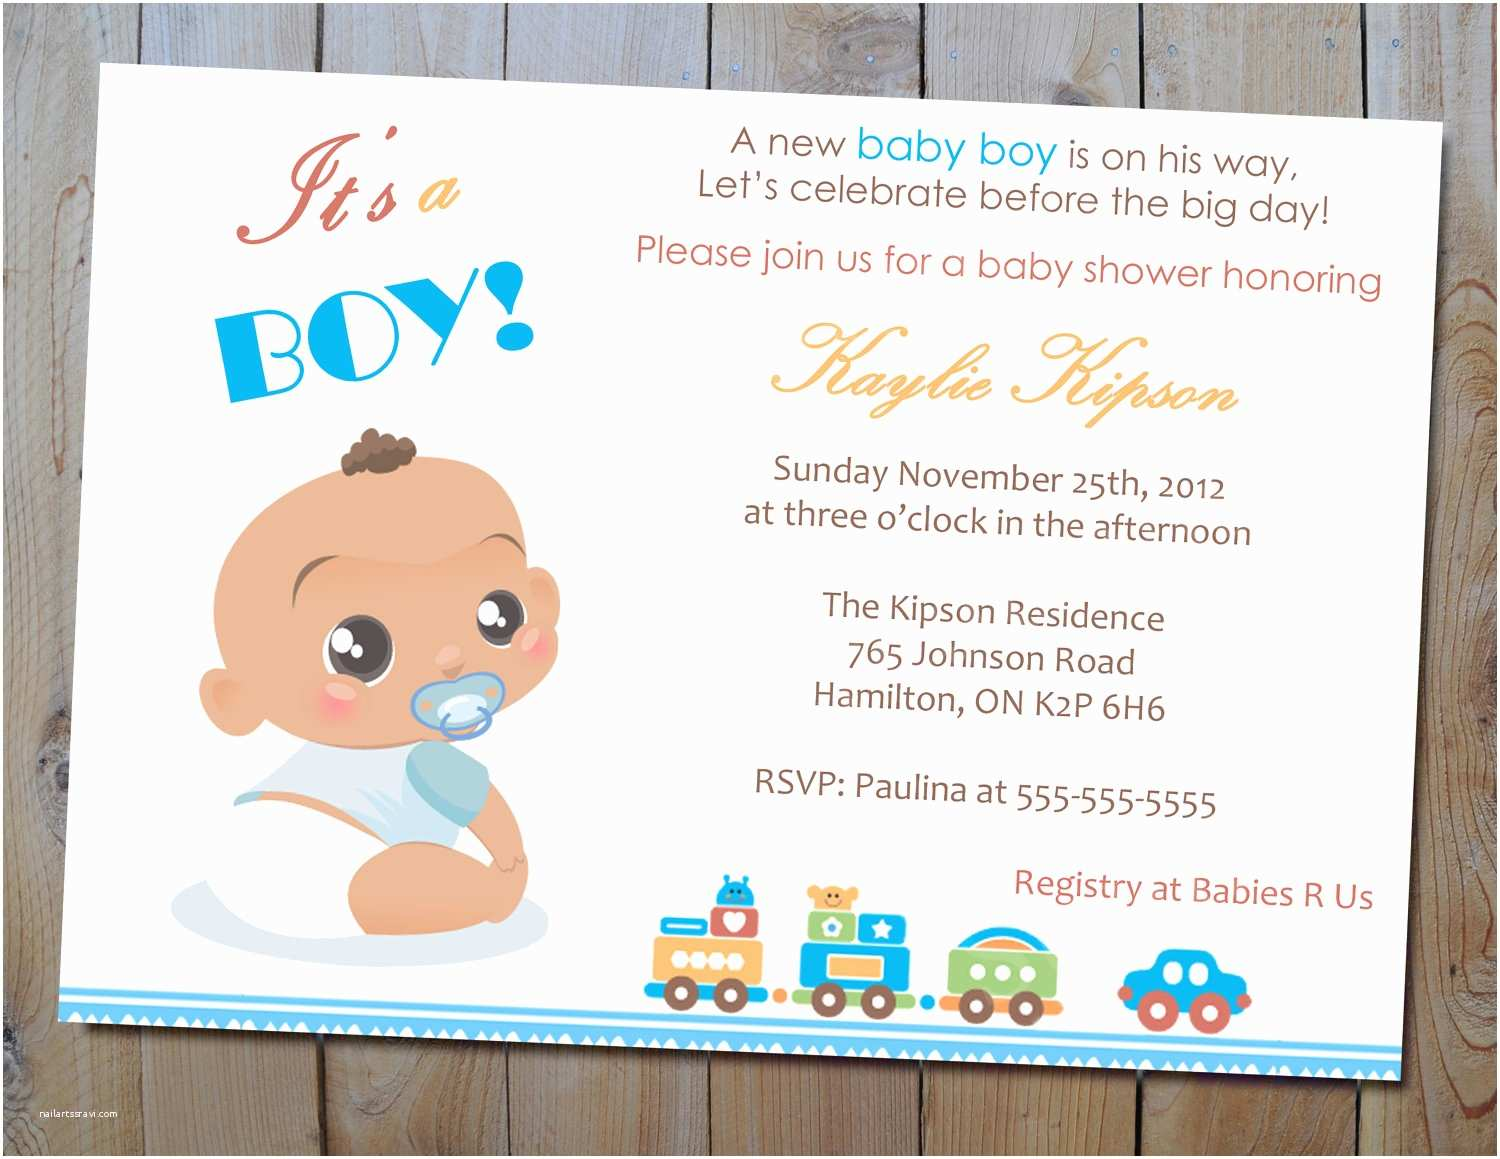 Baby Shower Invitations Wording the Best Wording for Boy Baby Shower Invitations